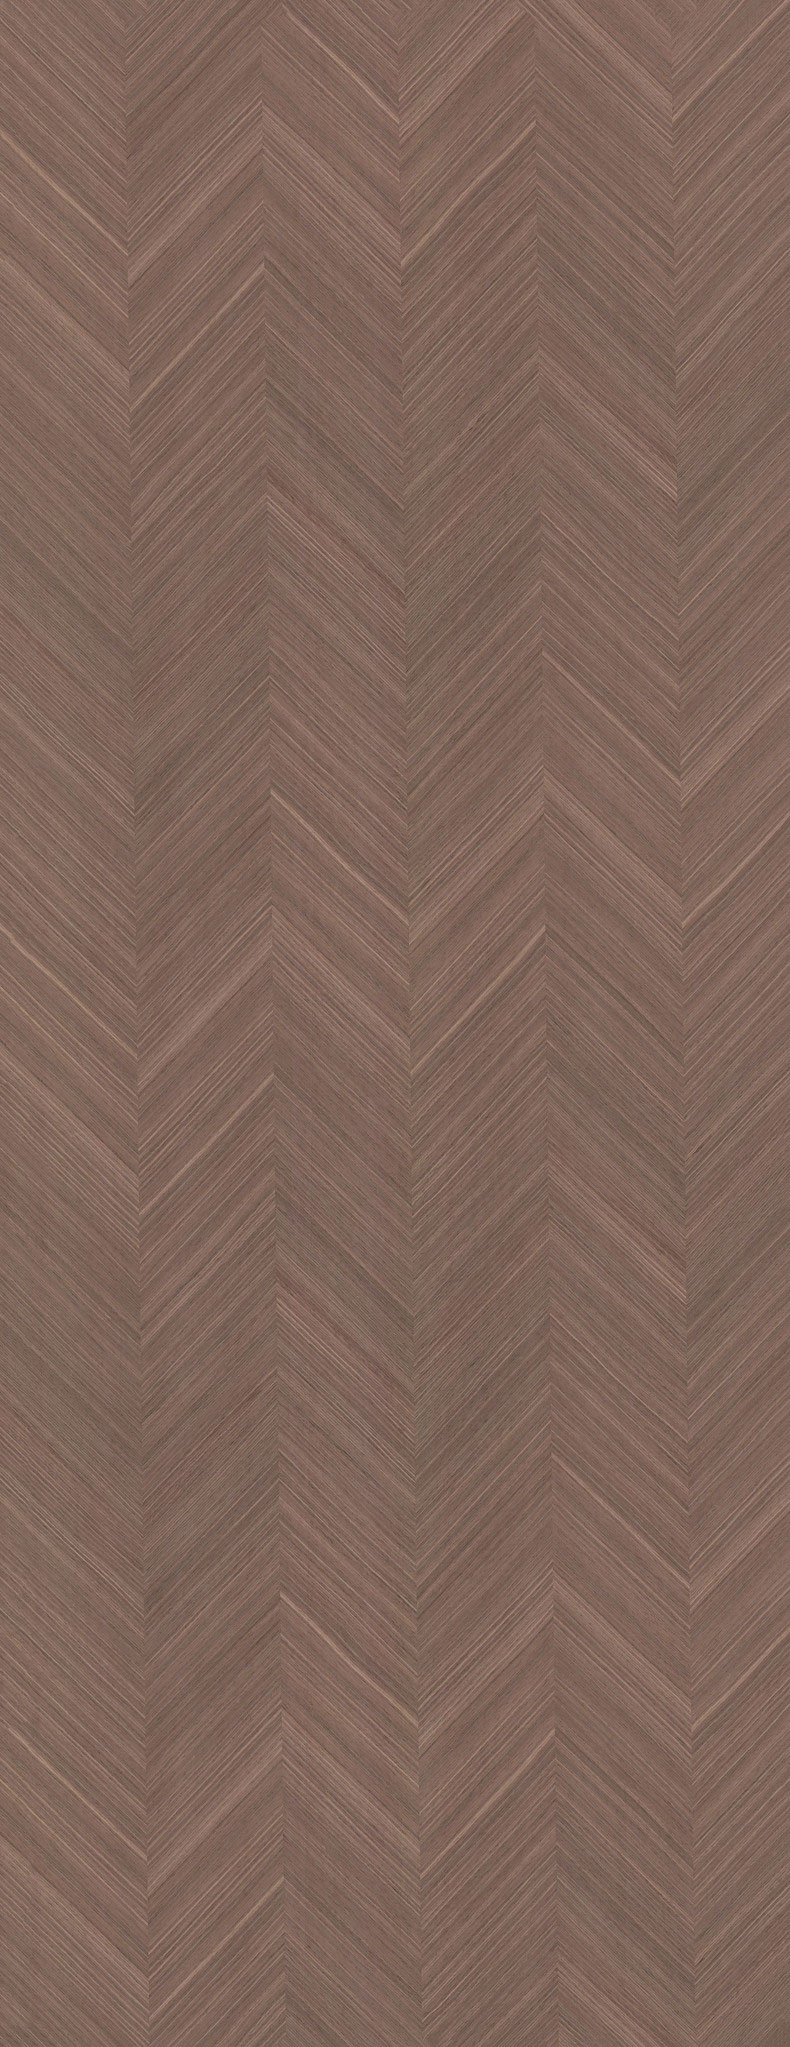 Recon Walnut Herringbone